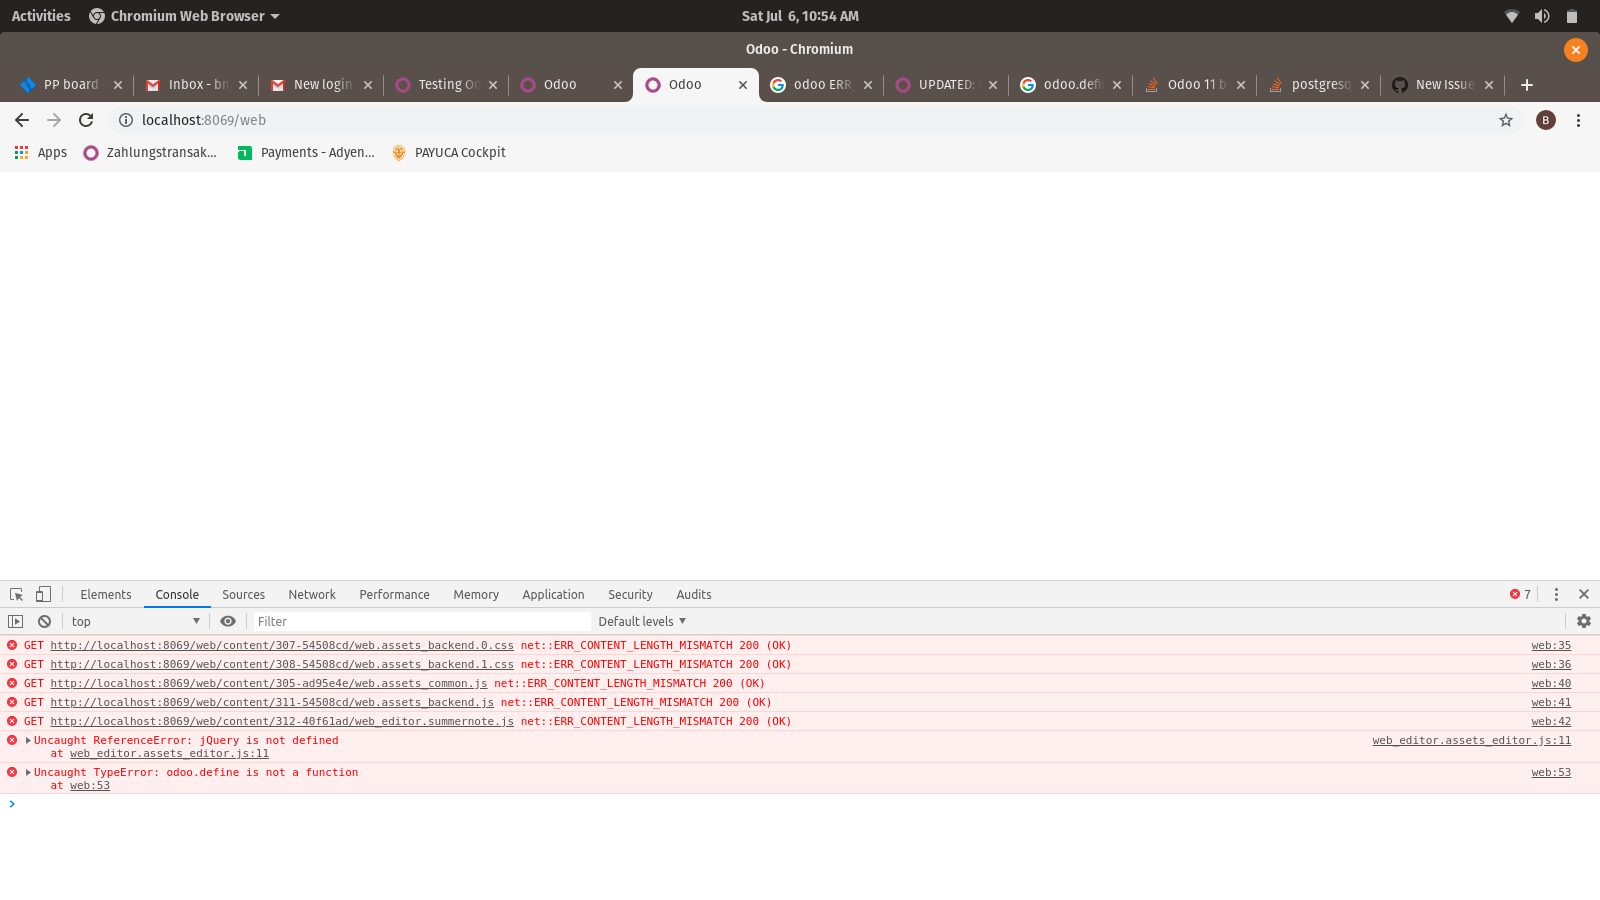 Odoo 12 blank page after login ERR_CONTENT_LENGTH_MISMATCH